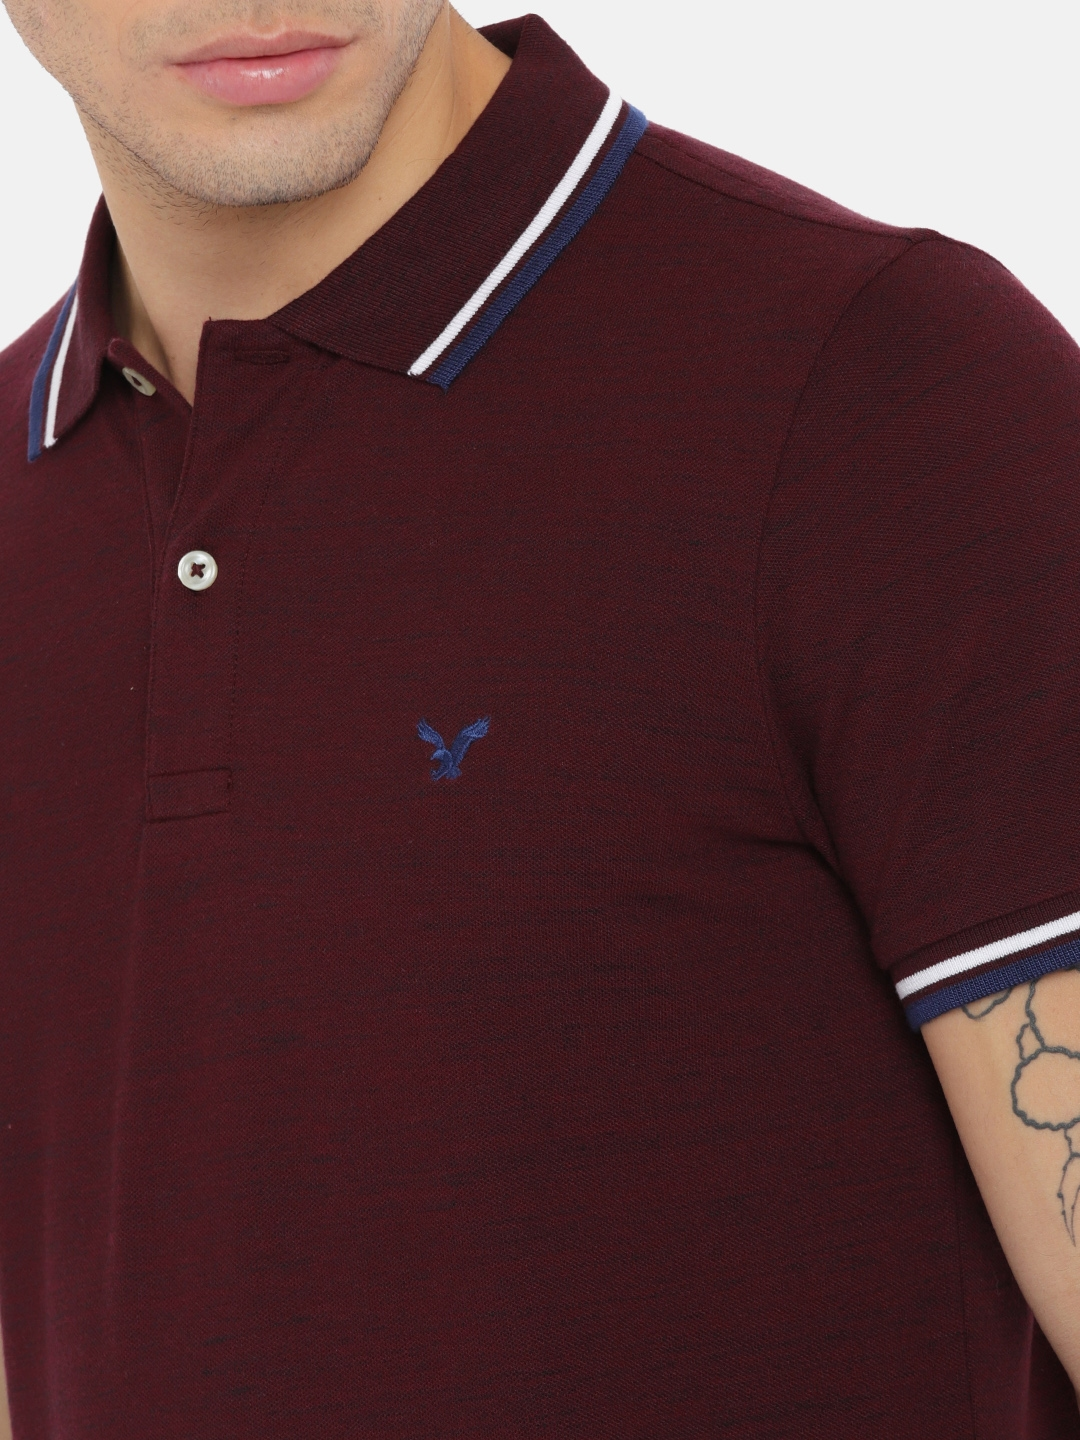 95287f405fd Buy AMERICAN EAGLE OUTFITTERS Men Burgundy Solid Polo Collar T Shirt ...